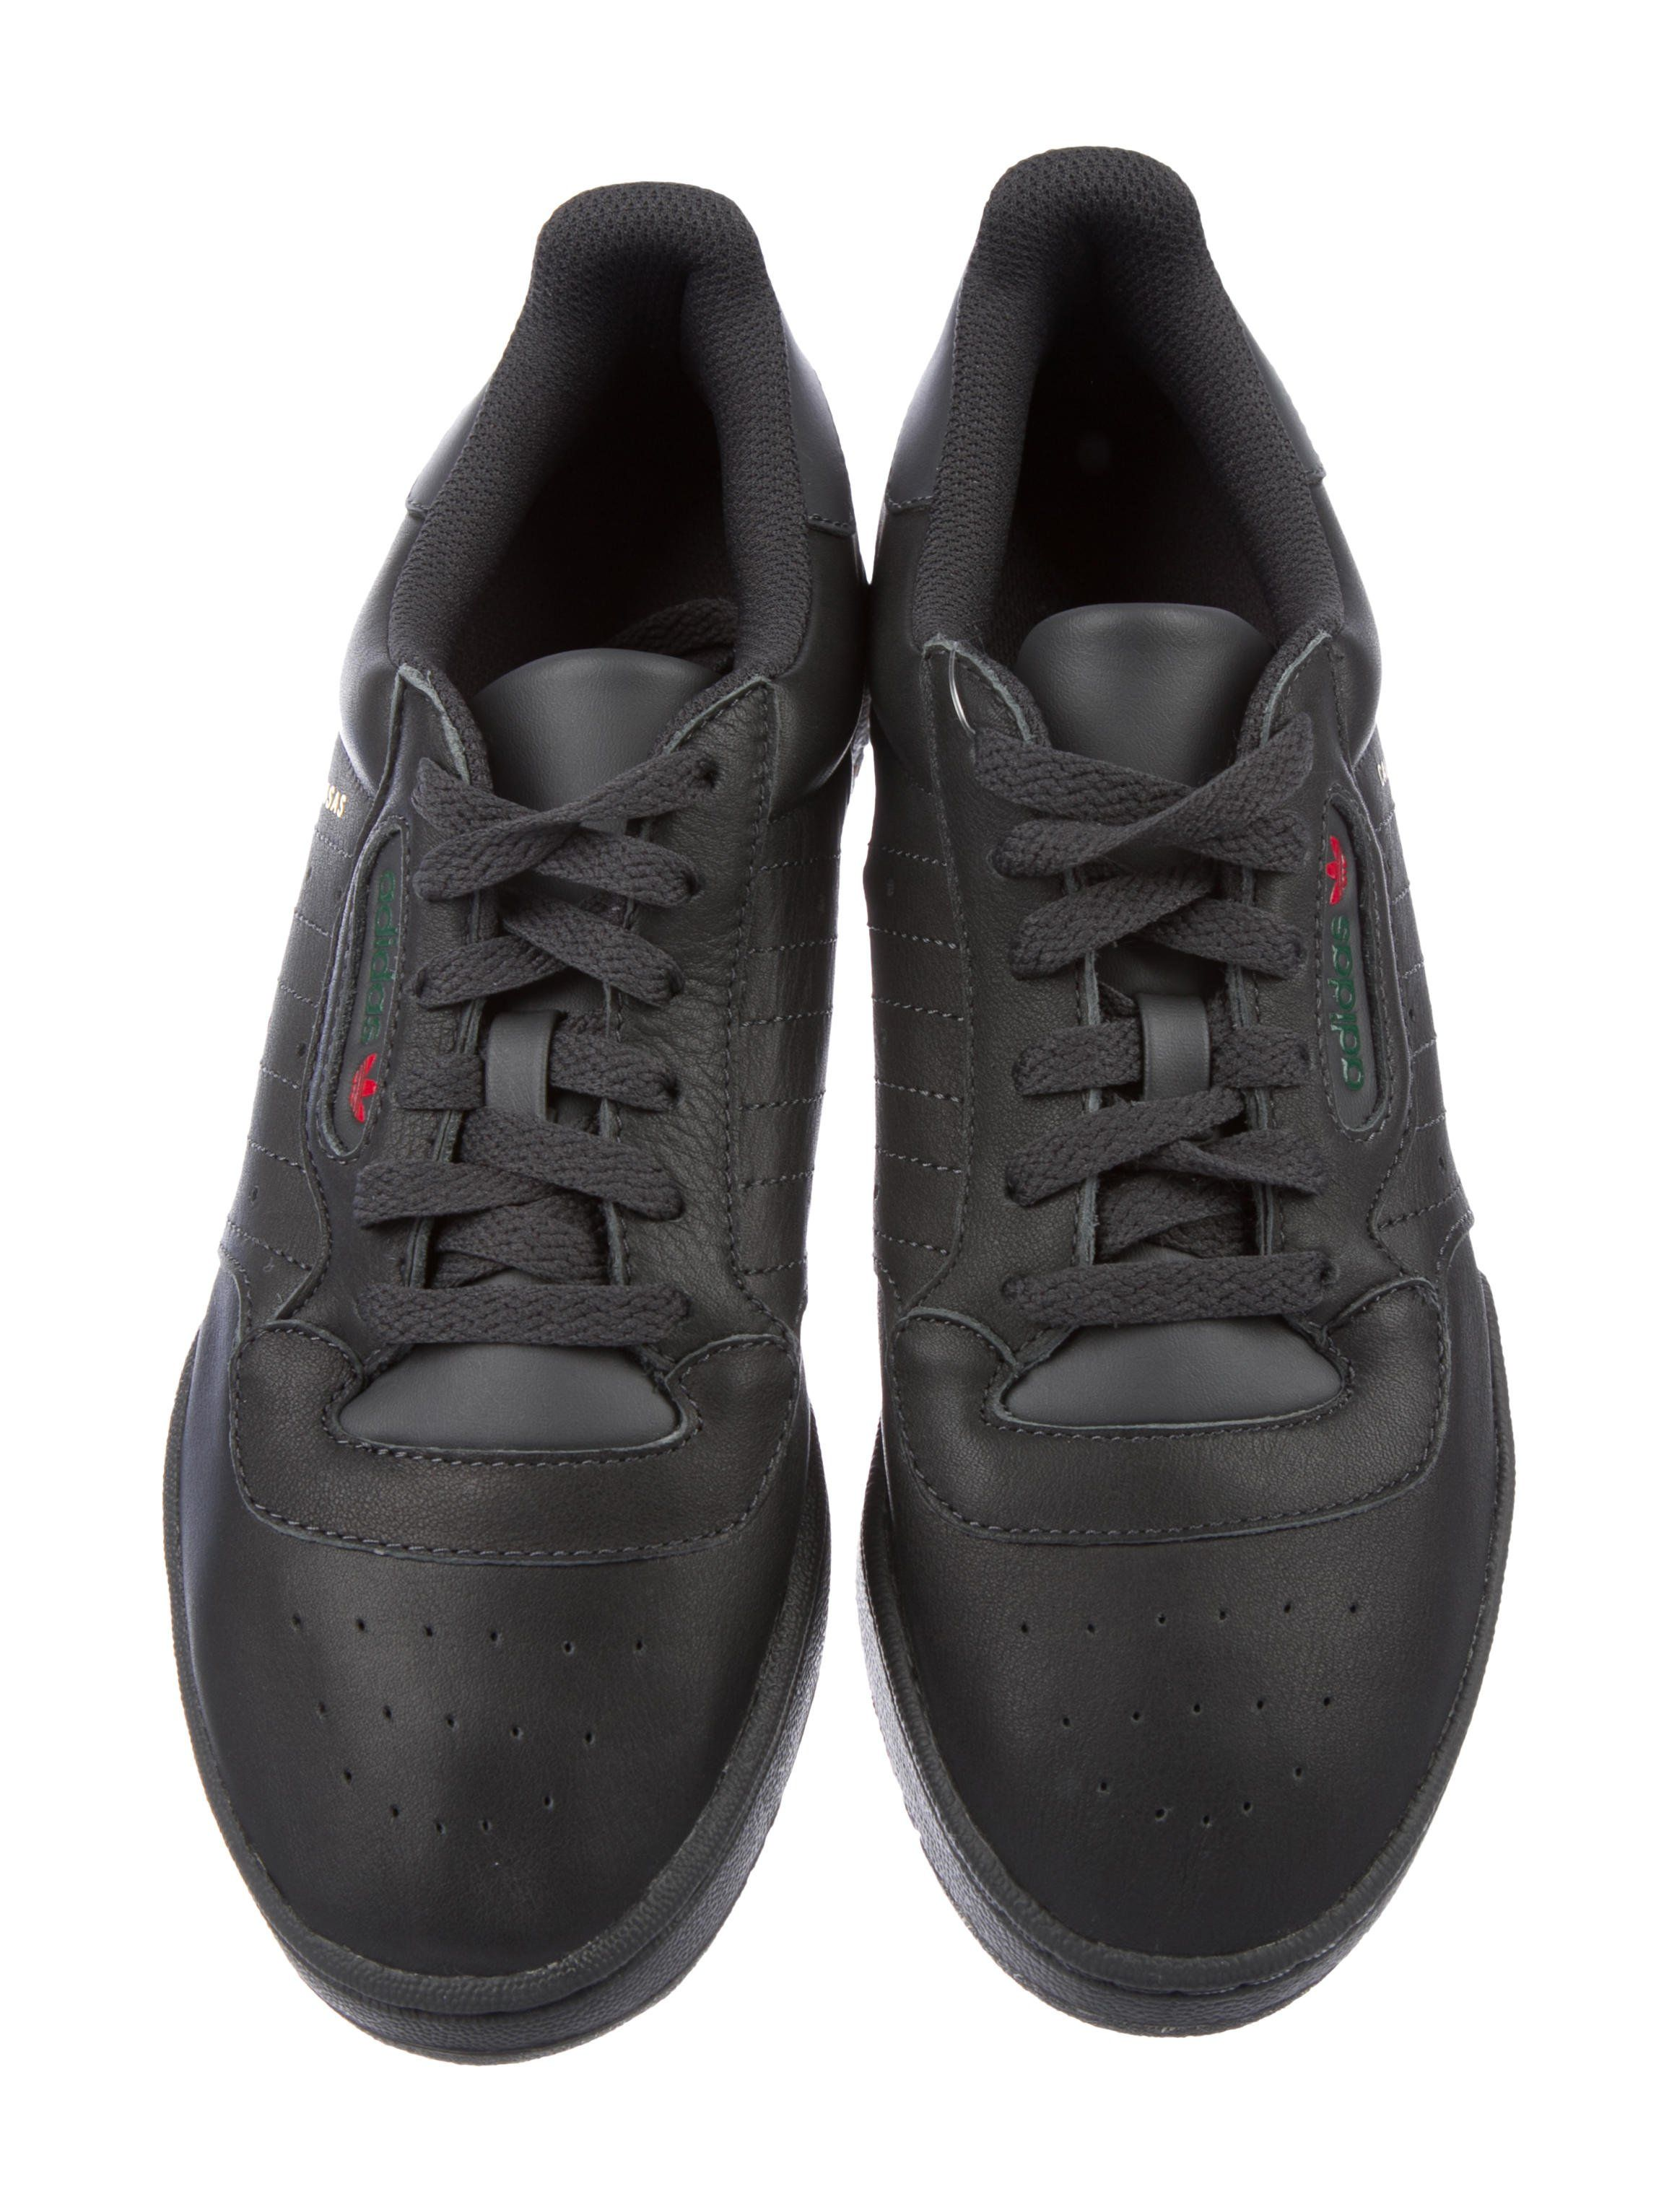 e15645eee4654 From the 2017 Release. Men s Core Black leather Adidas Yeezy Powerphase  Calabasas round-toe low-top sneakers with perforated accents